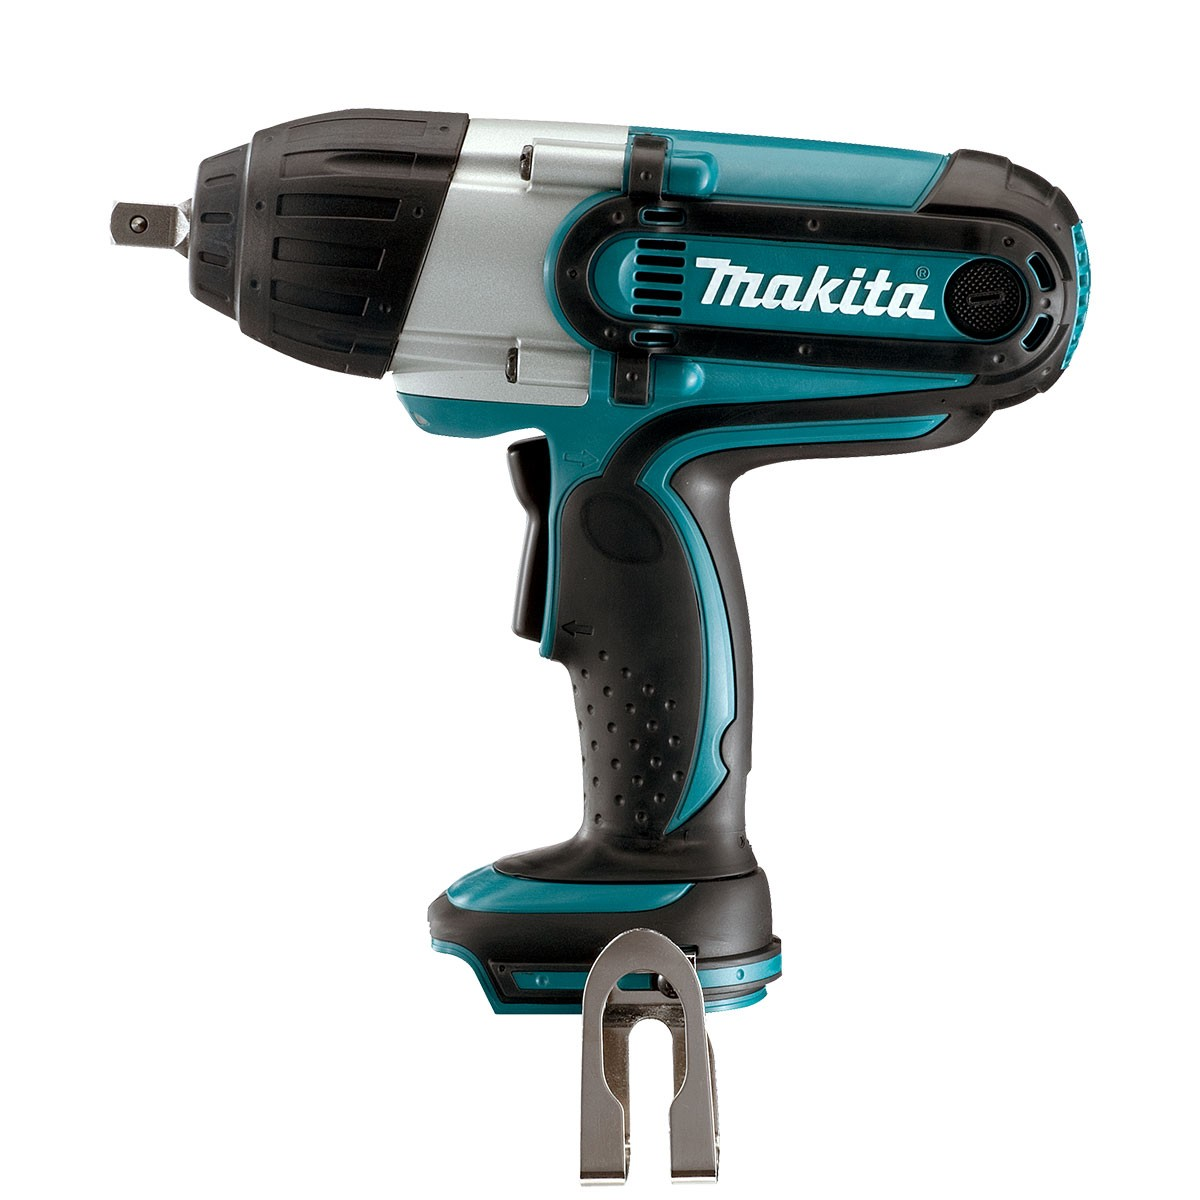 "Makita DTW450Z Cordless 18v 1/2"" Impact Wrench Body Only"